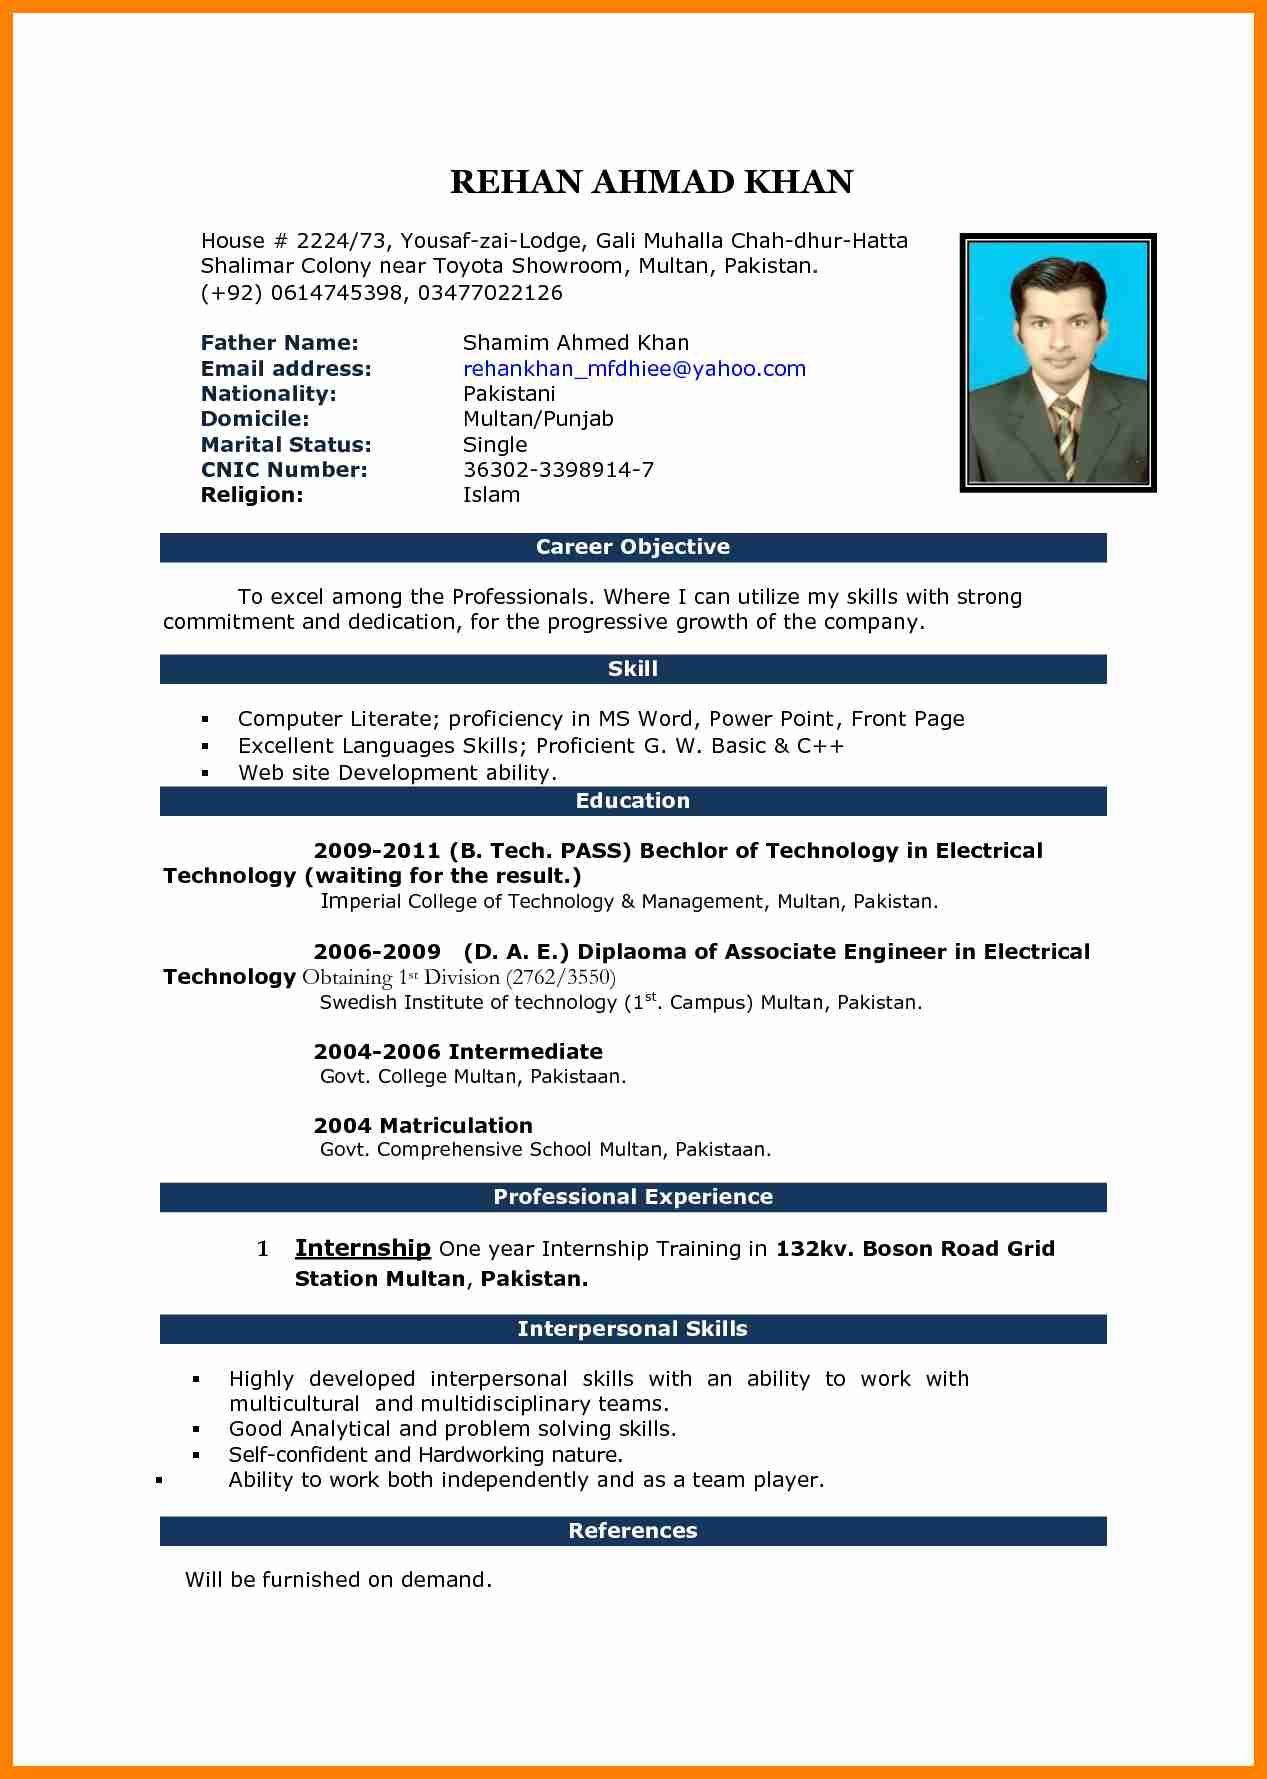 resume format for back office executive admin assistant microsoft templates free cv job Resume Front Office Executive Fresher Resume